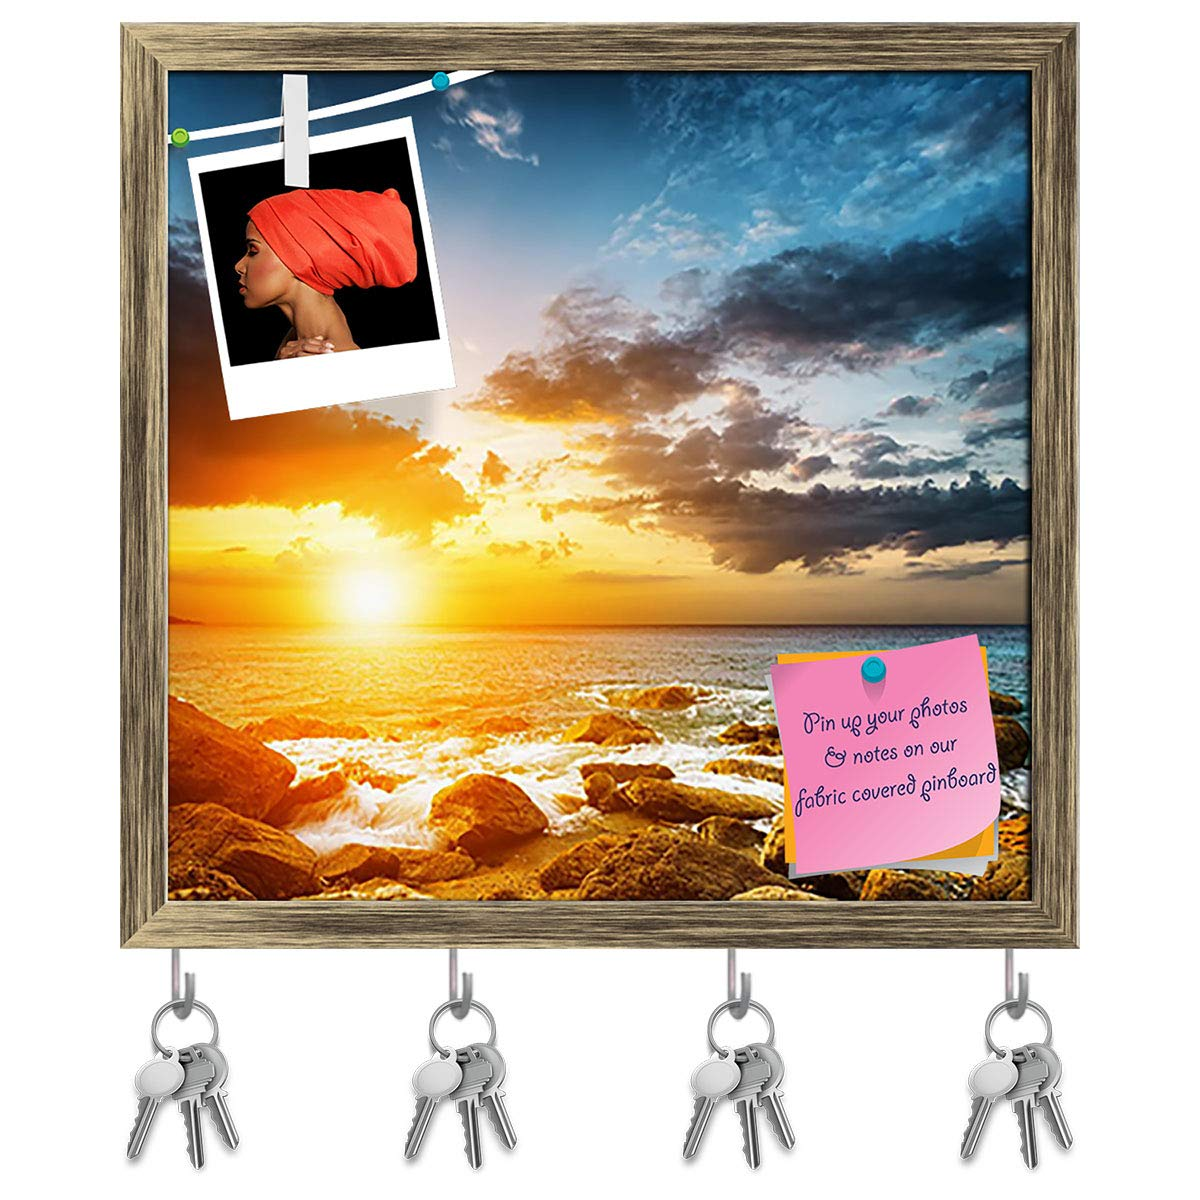 Antique gold Frame 16.6inch x 16inch (42.2cms x 40.6cms) Artzfolio Sunset Landscape Key Holder Hooks   Notice Pin Board   golden Frame 16.6 X 16Inch